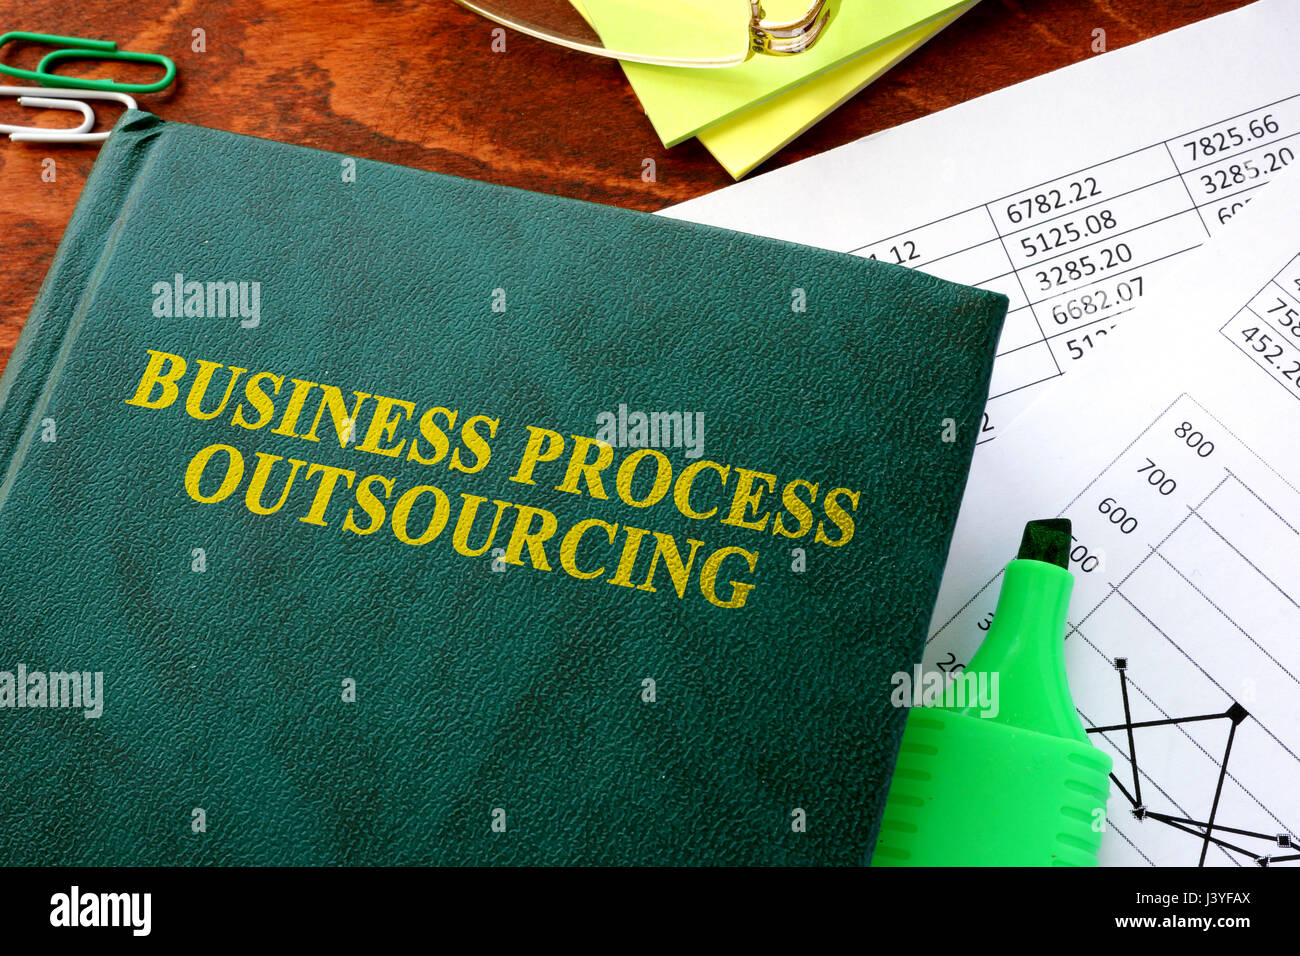 Book with title Business Process Outsourcing, BPO. - Stock Image